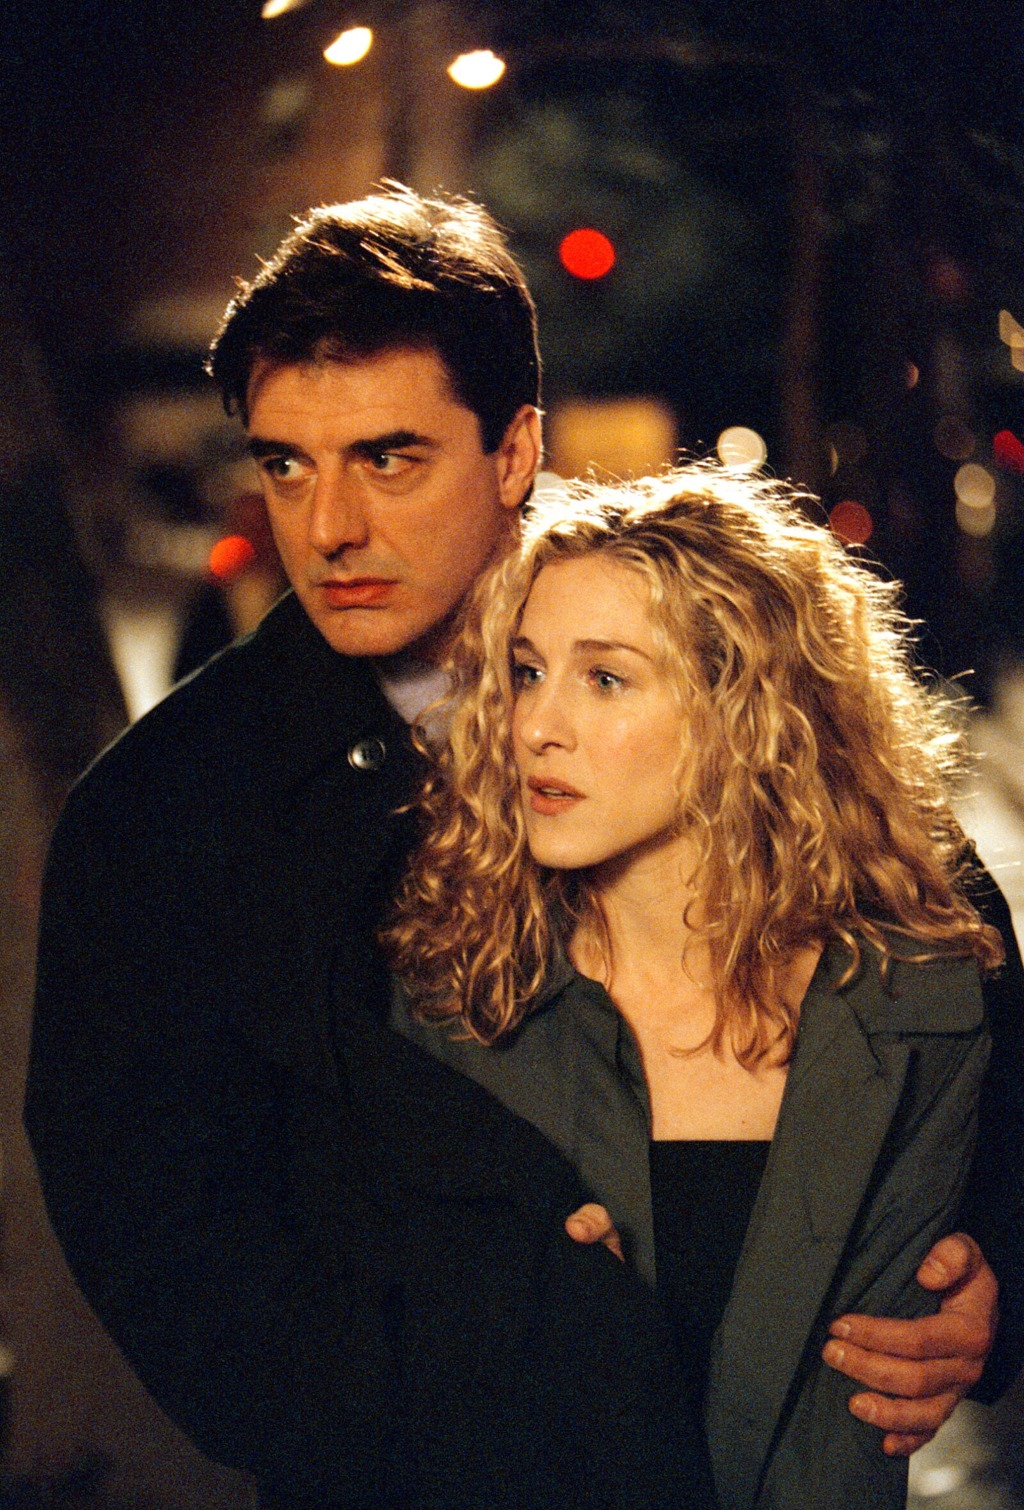 Mr. Big Sex and the City